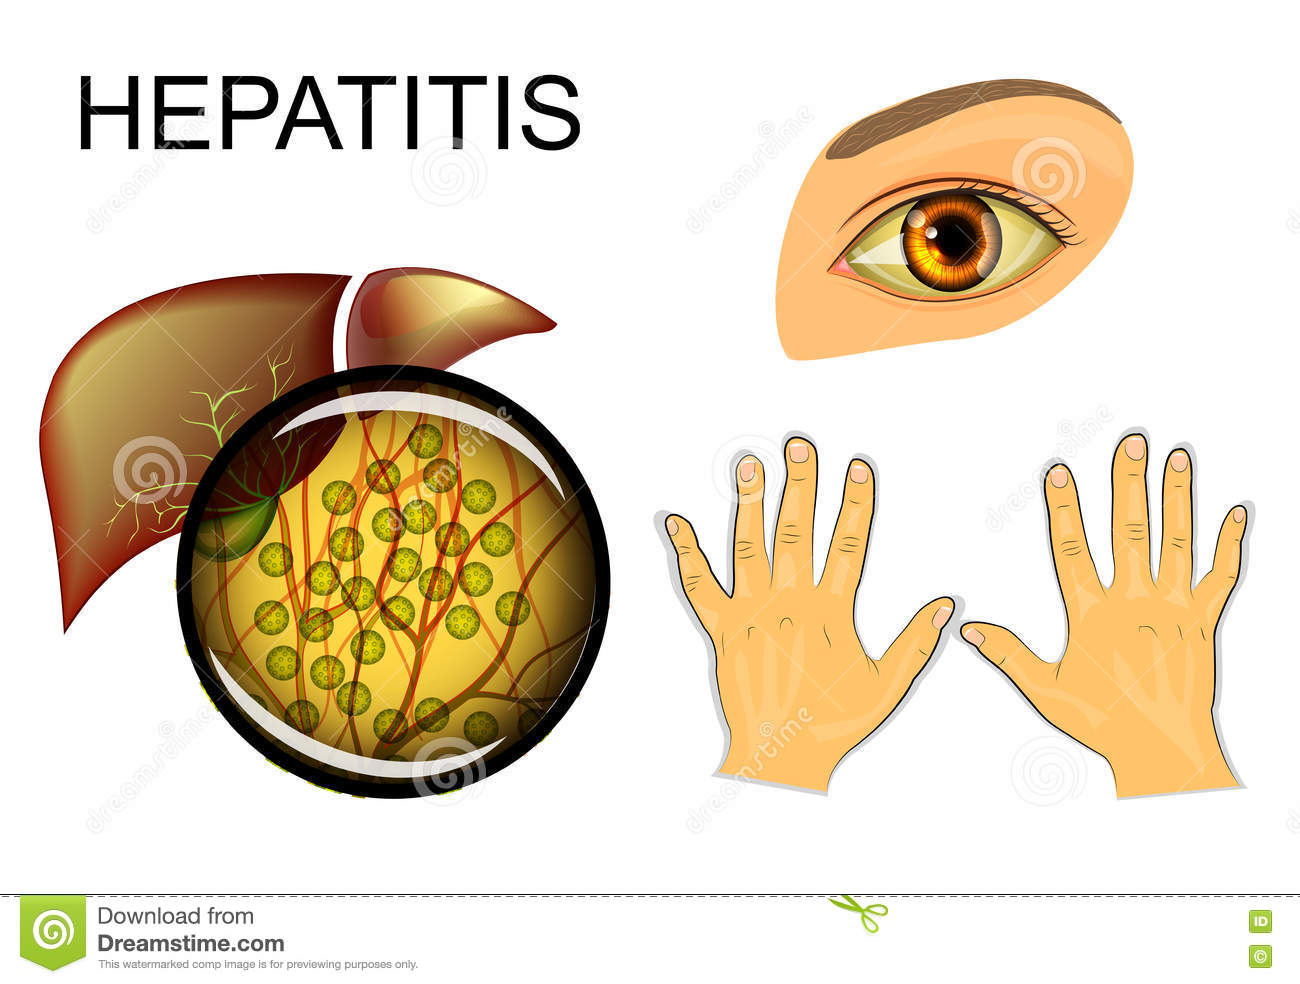 liver disease hepatitis c essay In this essay we will discuss about hepatitis c virus (hcv)  chronic infection,  after many years can lead to cirrhosis, liver failure, liver cancer and death.